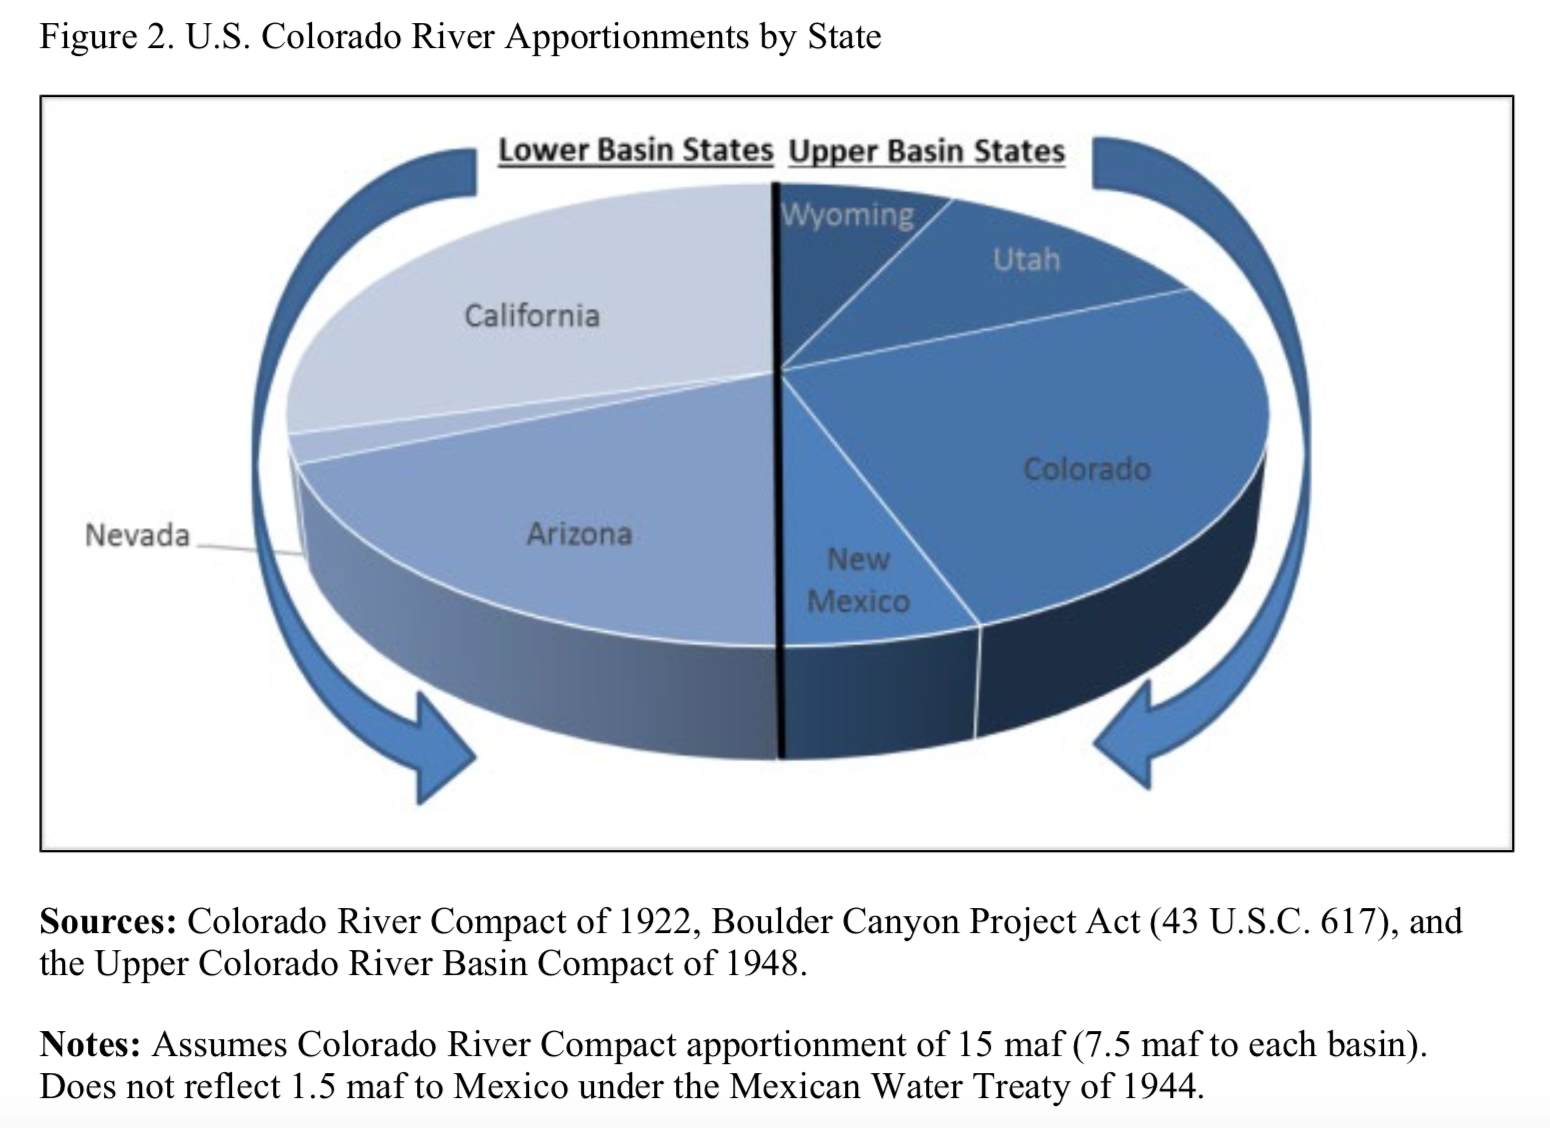 CRS Insight Report: 'Drought Contingency Plans for the